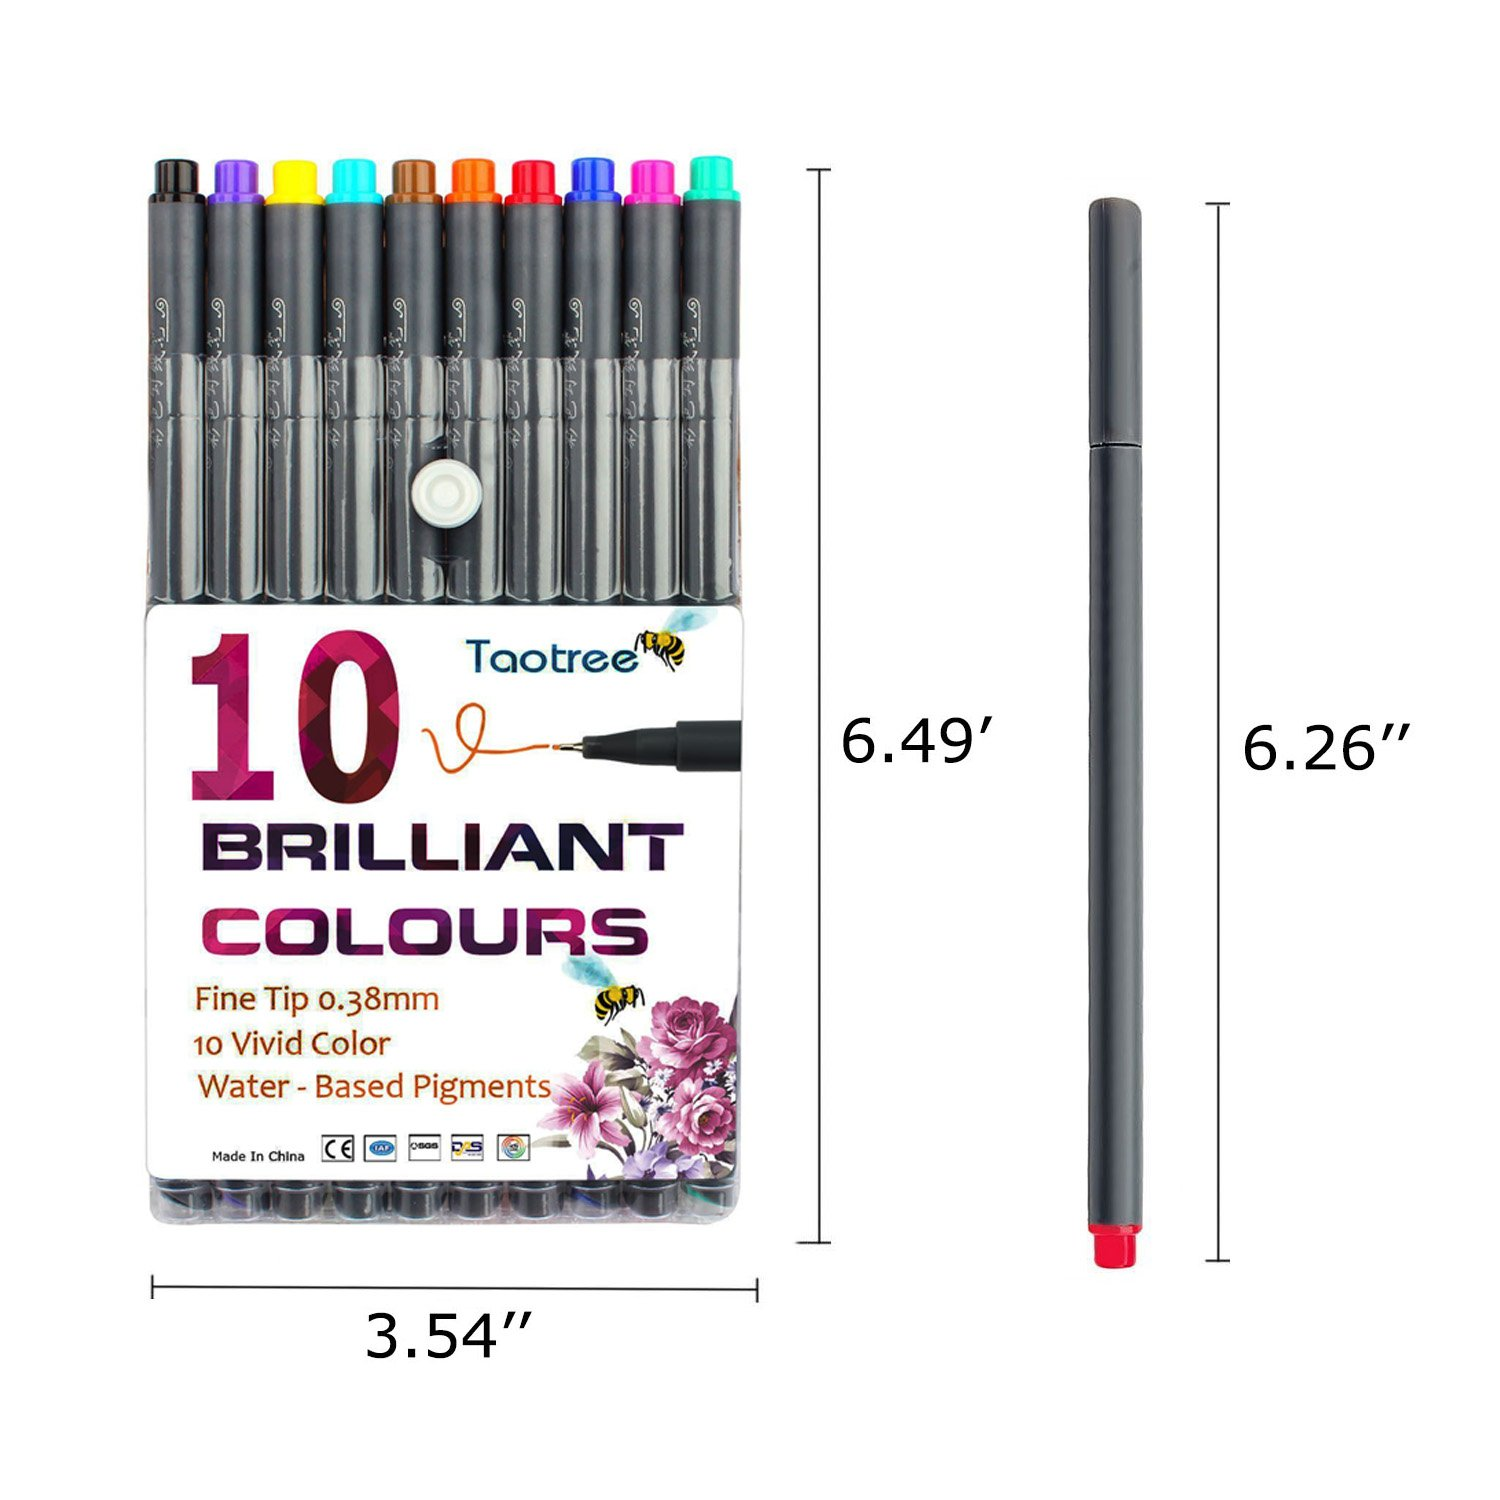 Fineliner Color Pen Set, Taotree 0.38mm Colored Sketch Drawing Pen, Porous Fine Point Markers for Bullet Journaling and Note Taking, 10 Assorted Colors by Taotree (Image #2)